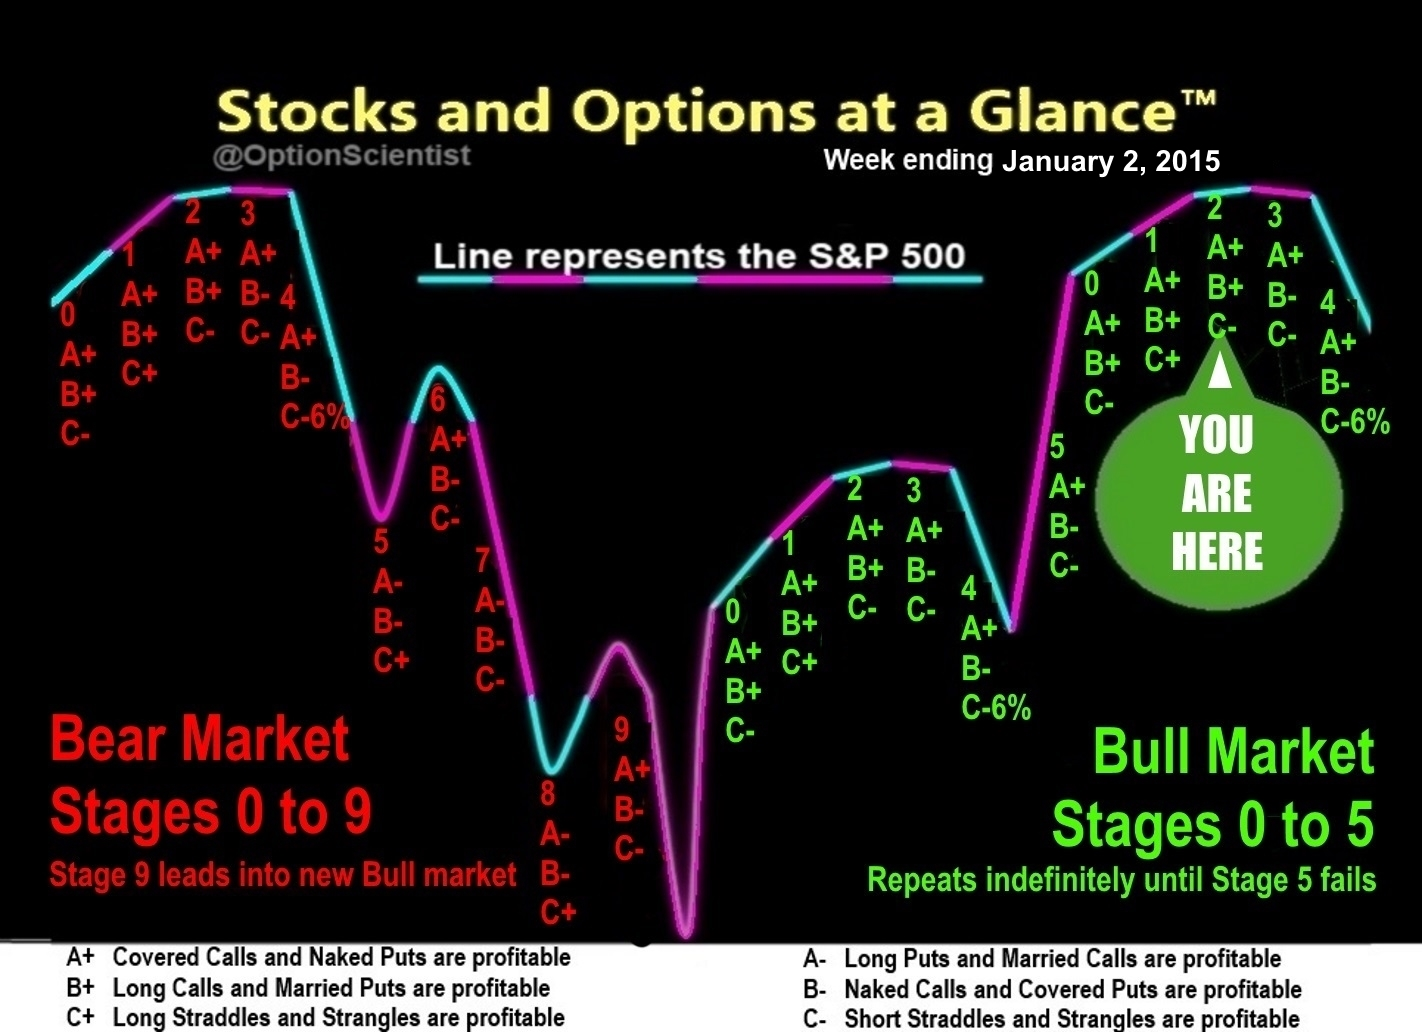 Stocks and Options at a Glance 01-02-15